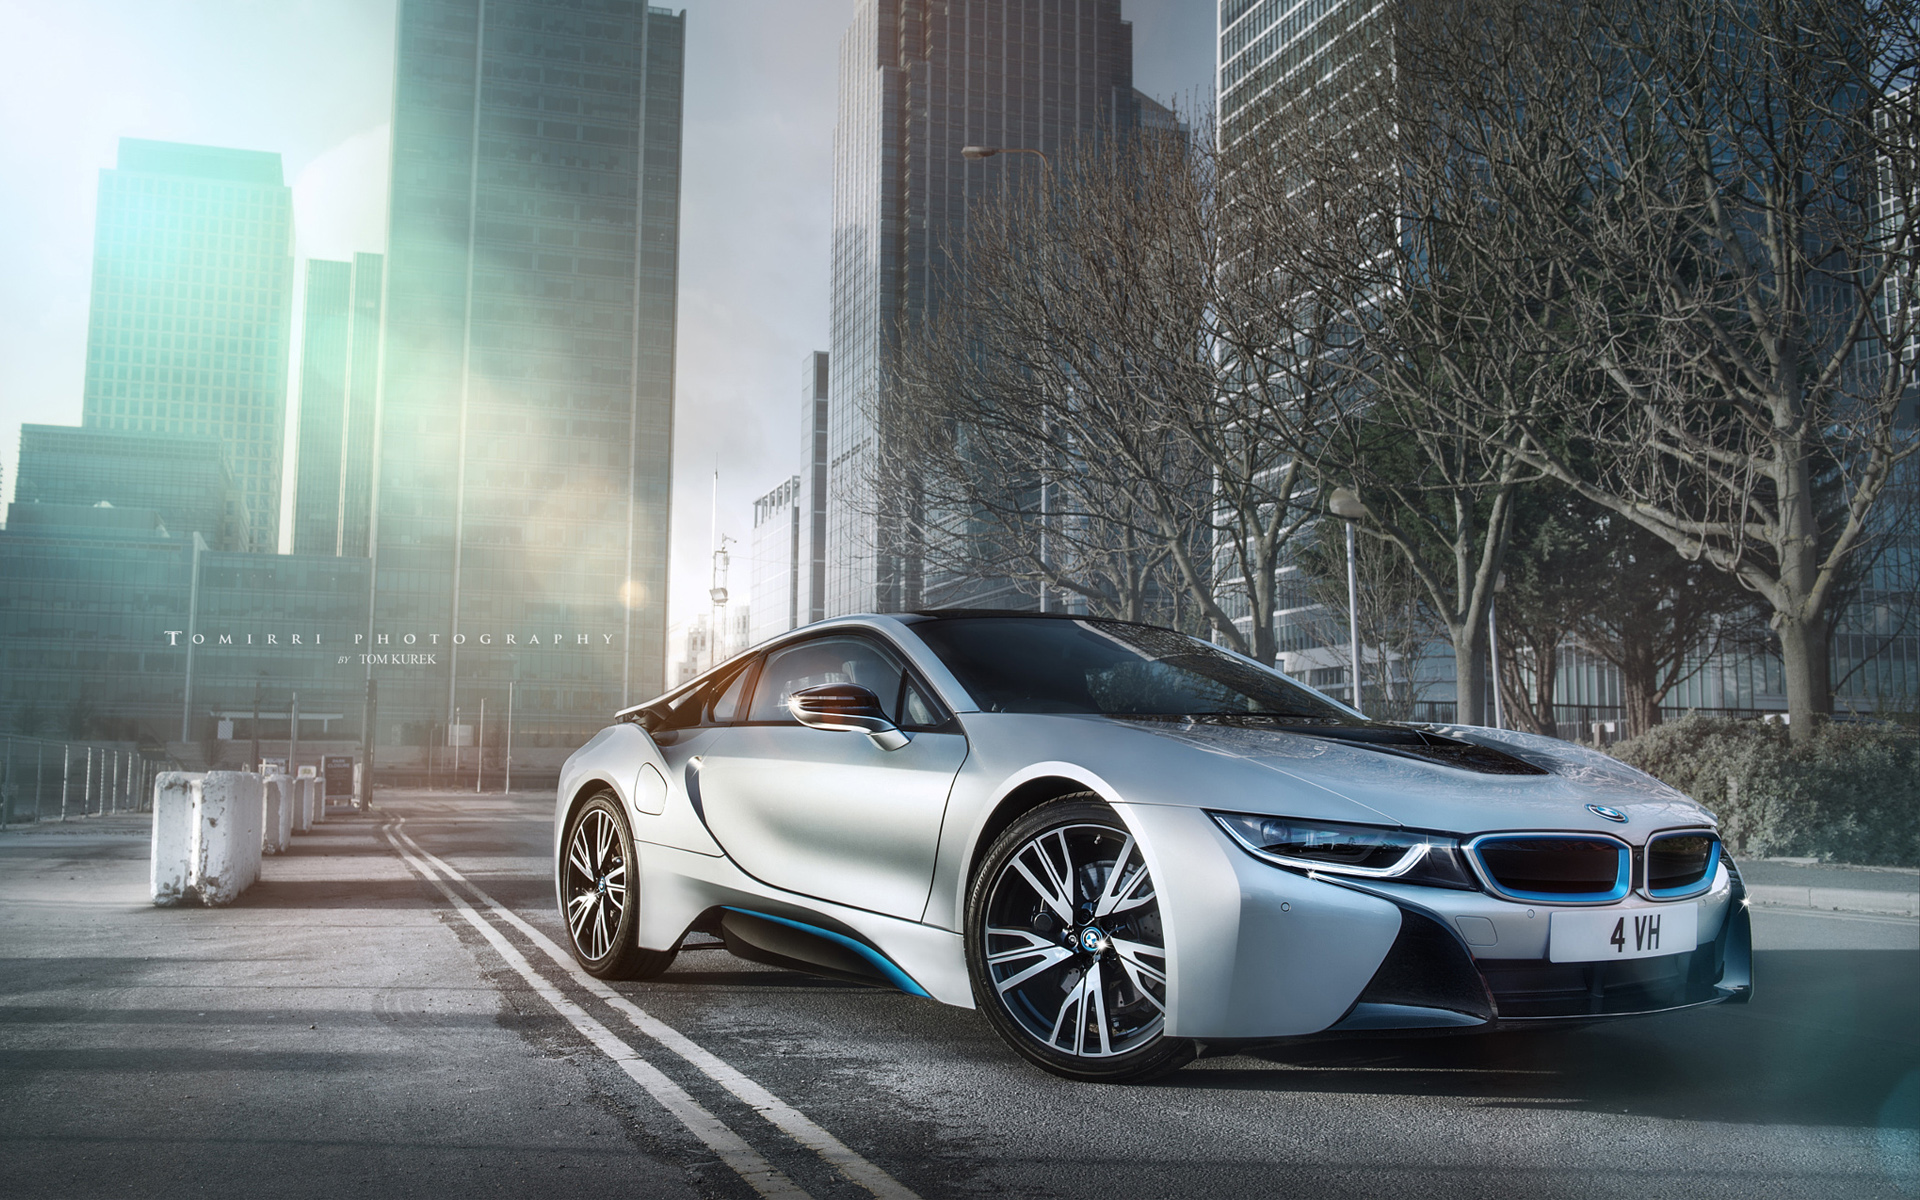 Bmw I Hd Wallpapers Backgrounds Wallpaper Abyss BMW I Hybrid Supercar  Wallpapers For Desktop Wallpaper 1920x1200